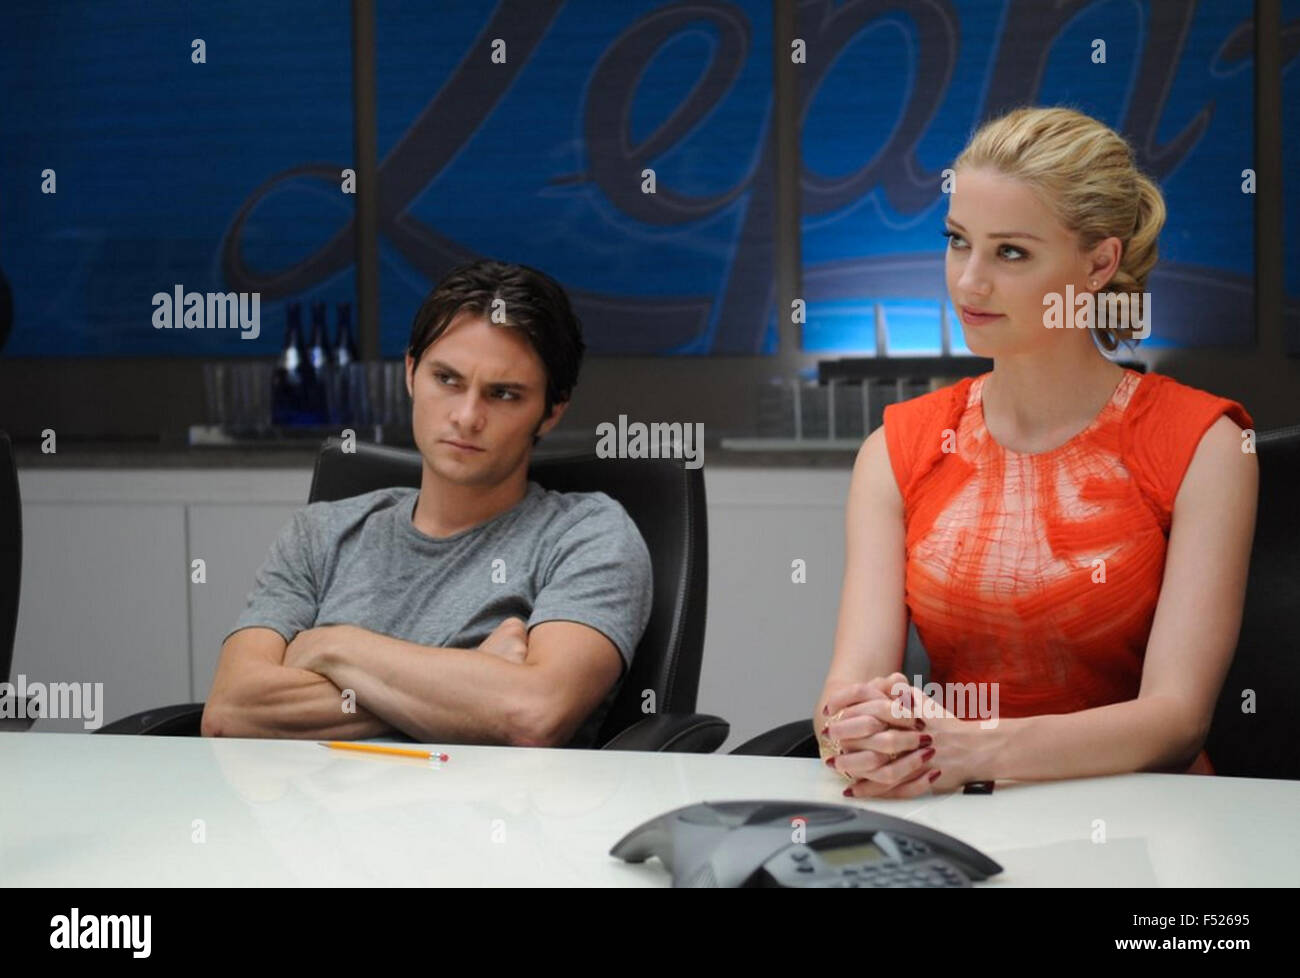 SYRUP 2013 Magnolia Pictures film with Amber Heard and Shiloh Fernandez - Stock Image